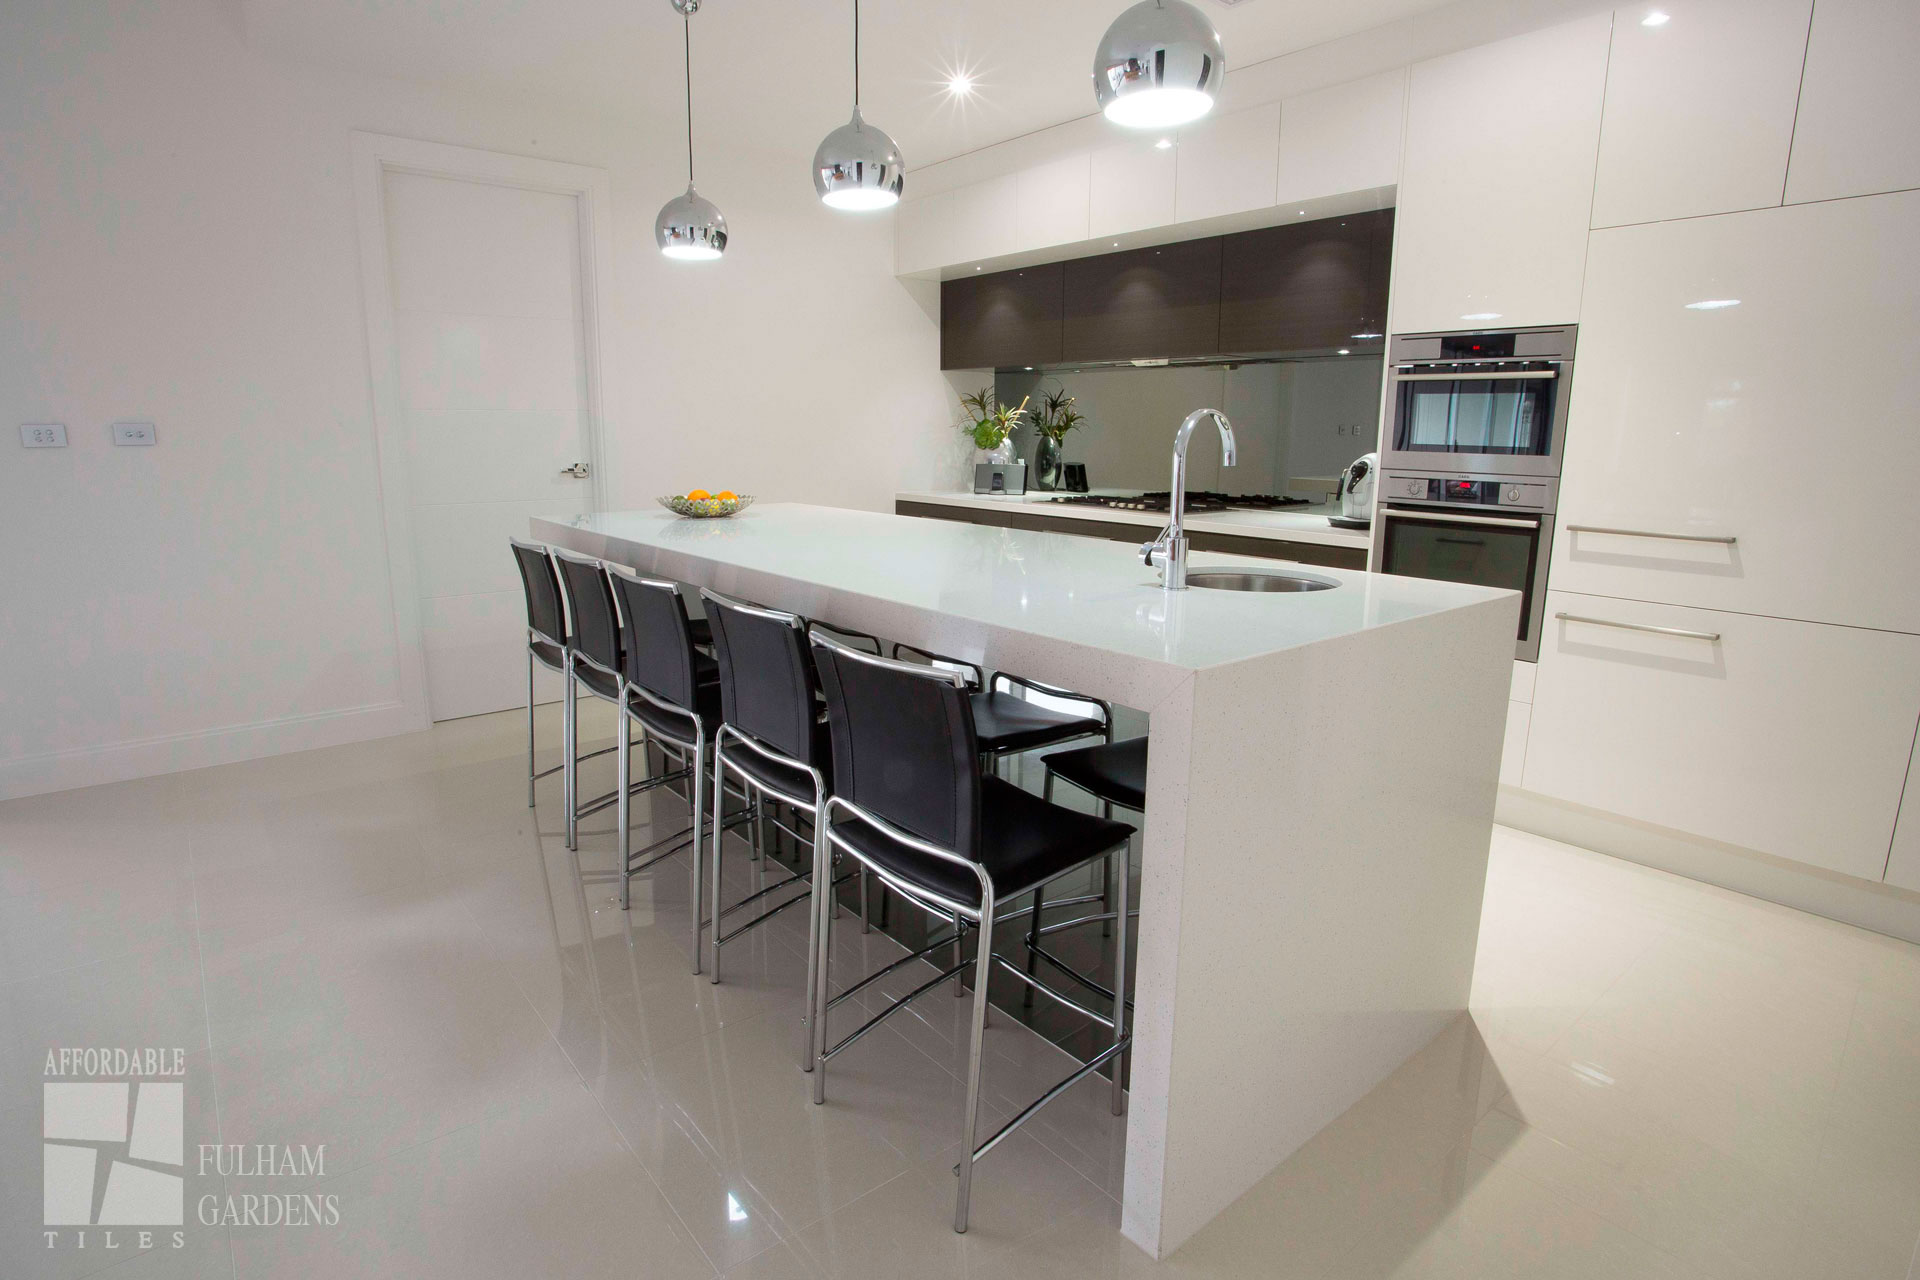 Kitchen Tiles Adelaide kitchen tiles | products & services | affordable tiles adelaide